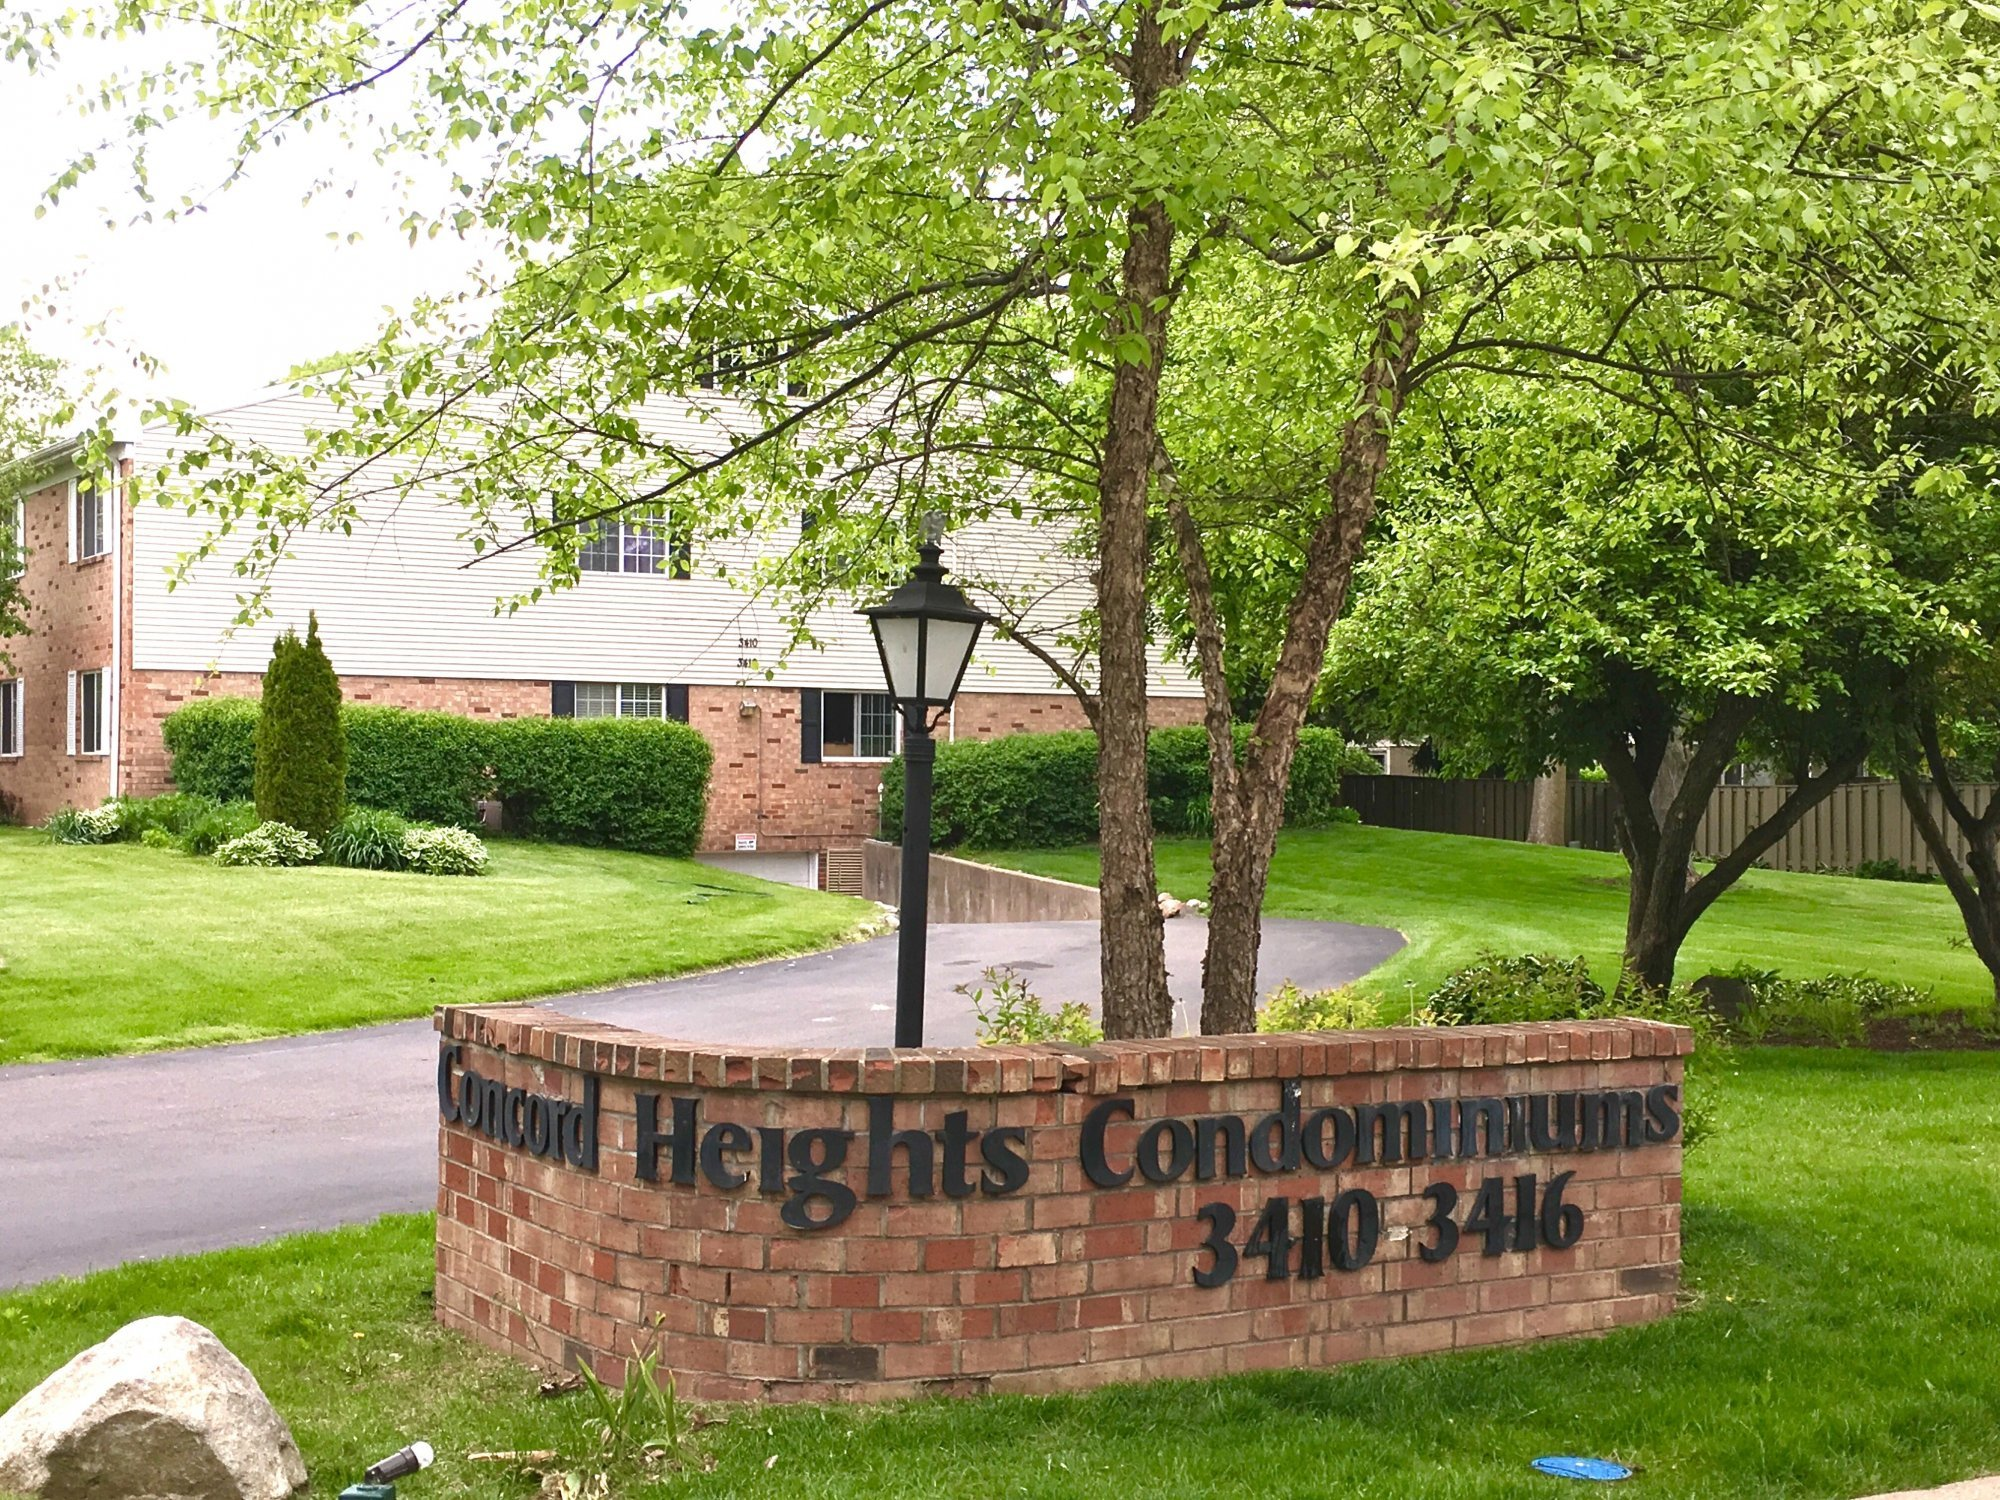 Concord Heights Condominiums Signage